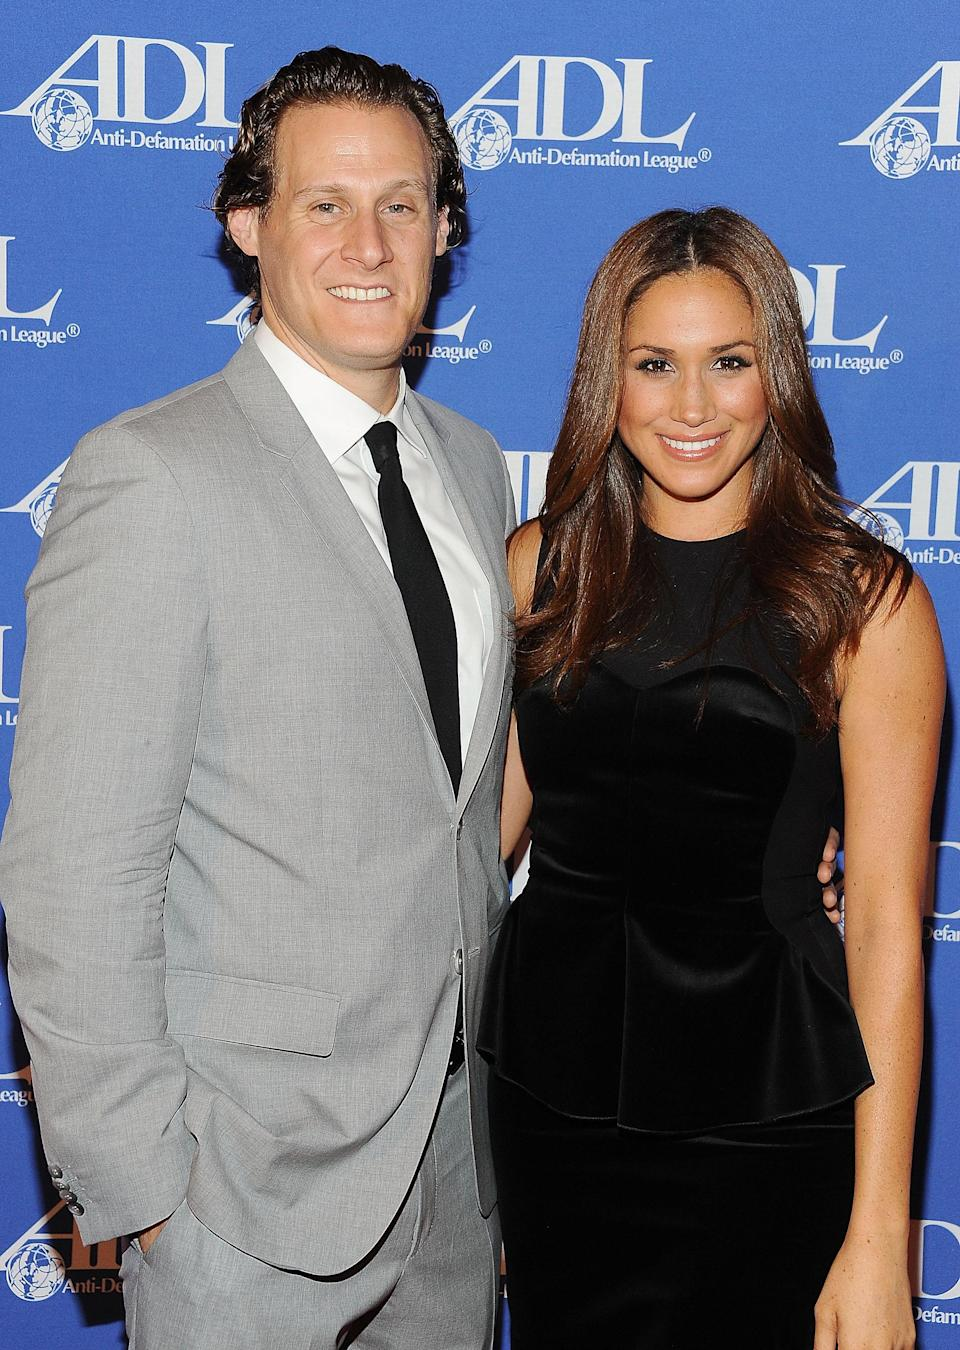 Meghan Markle's ex-husband, Trevor Engelson (pictured with her in 2011), has reportedly remarried. (Photo: Michael Kovac/WireImage)